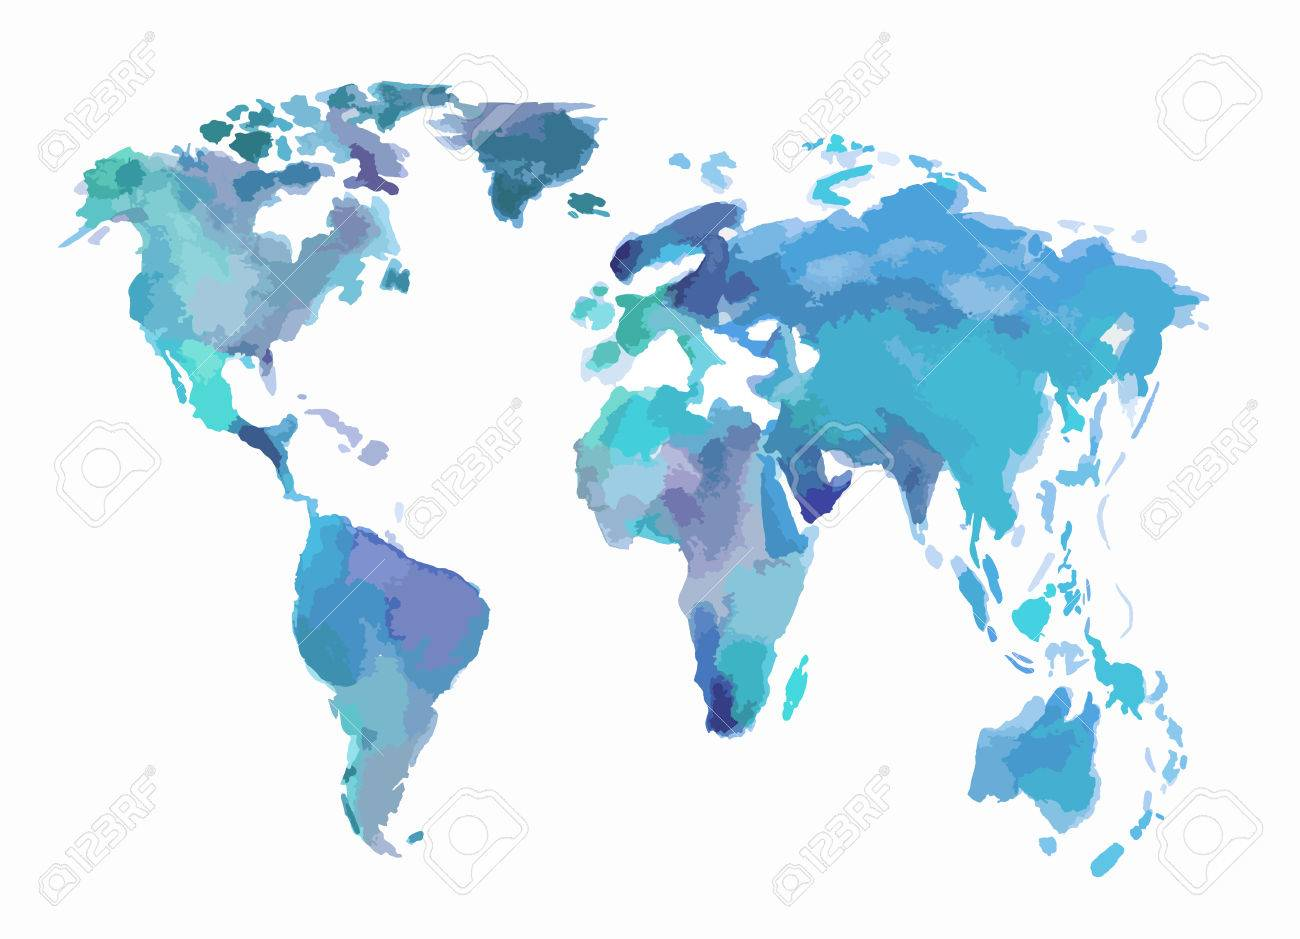 Beautiful Map Of The World.Watercolor Blue World Map Beautiful Map With Lands And Islands